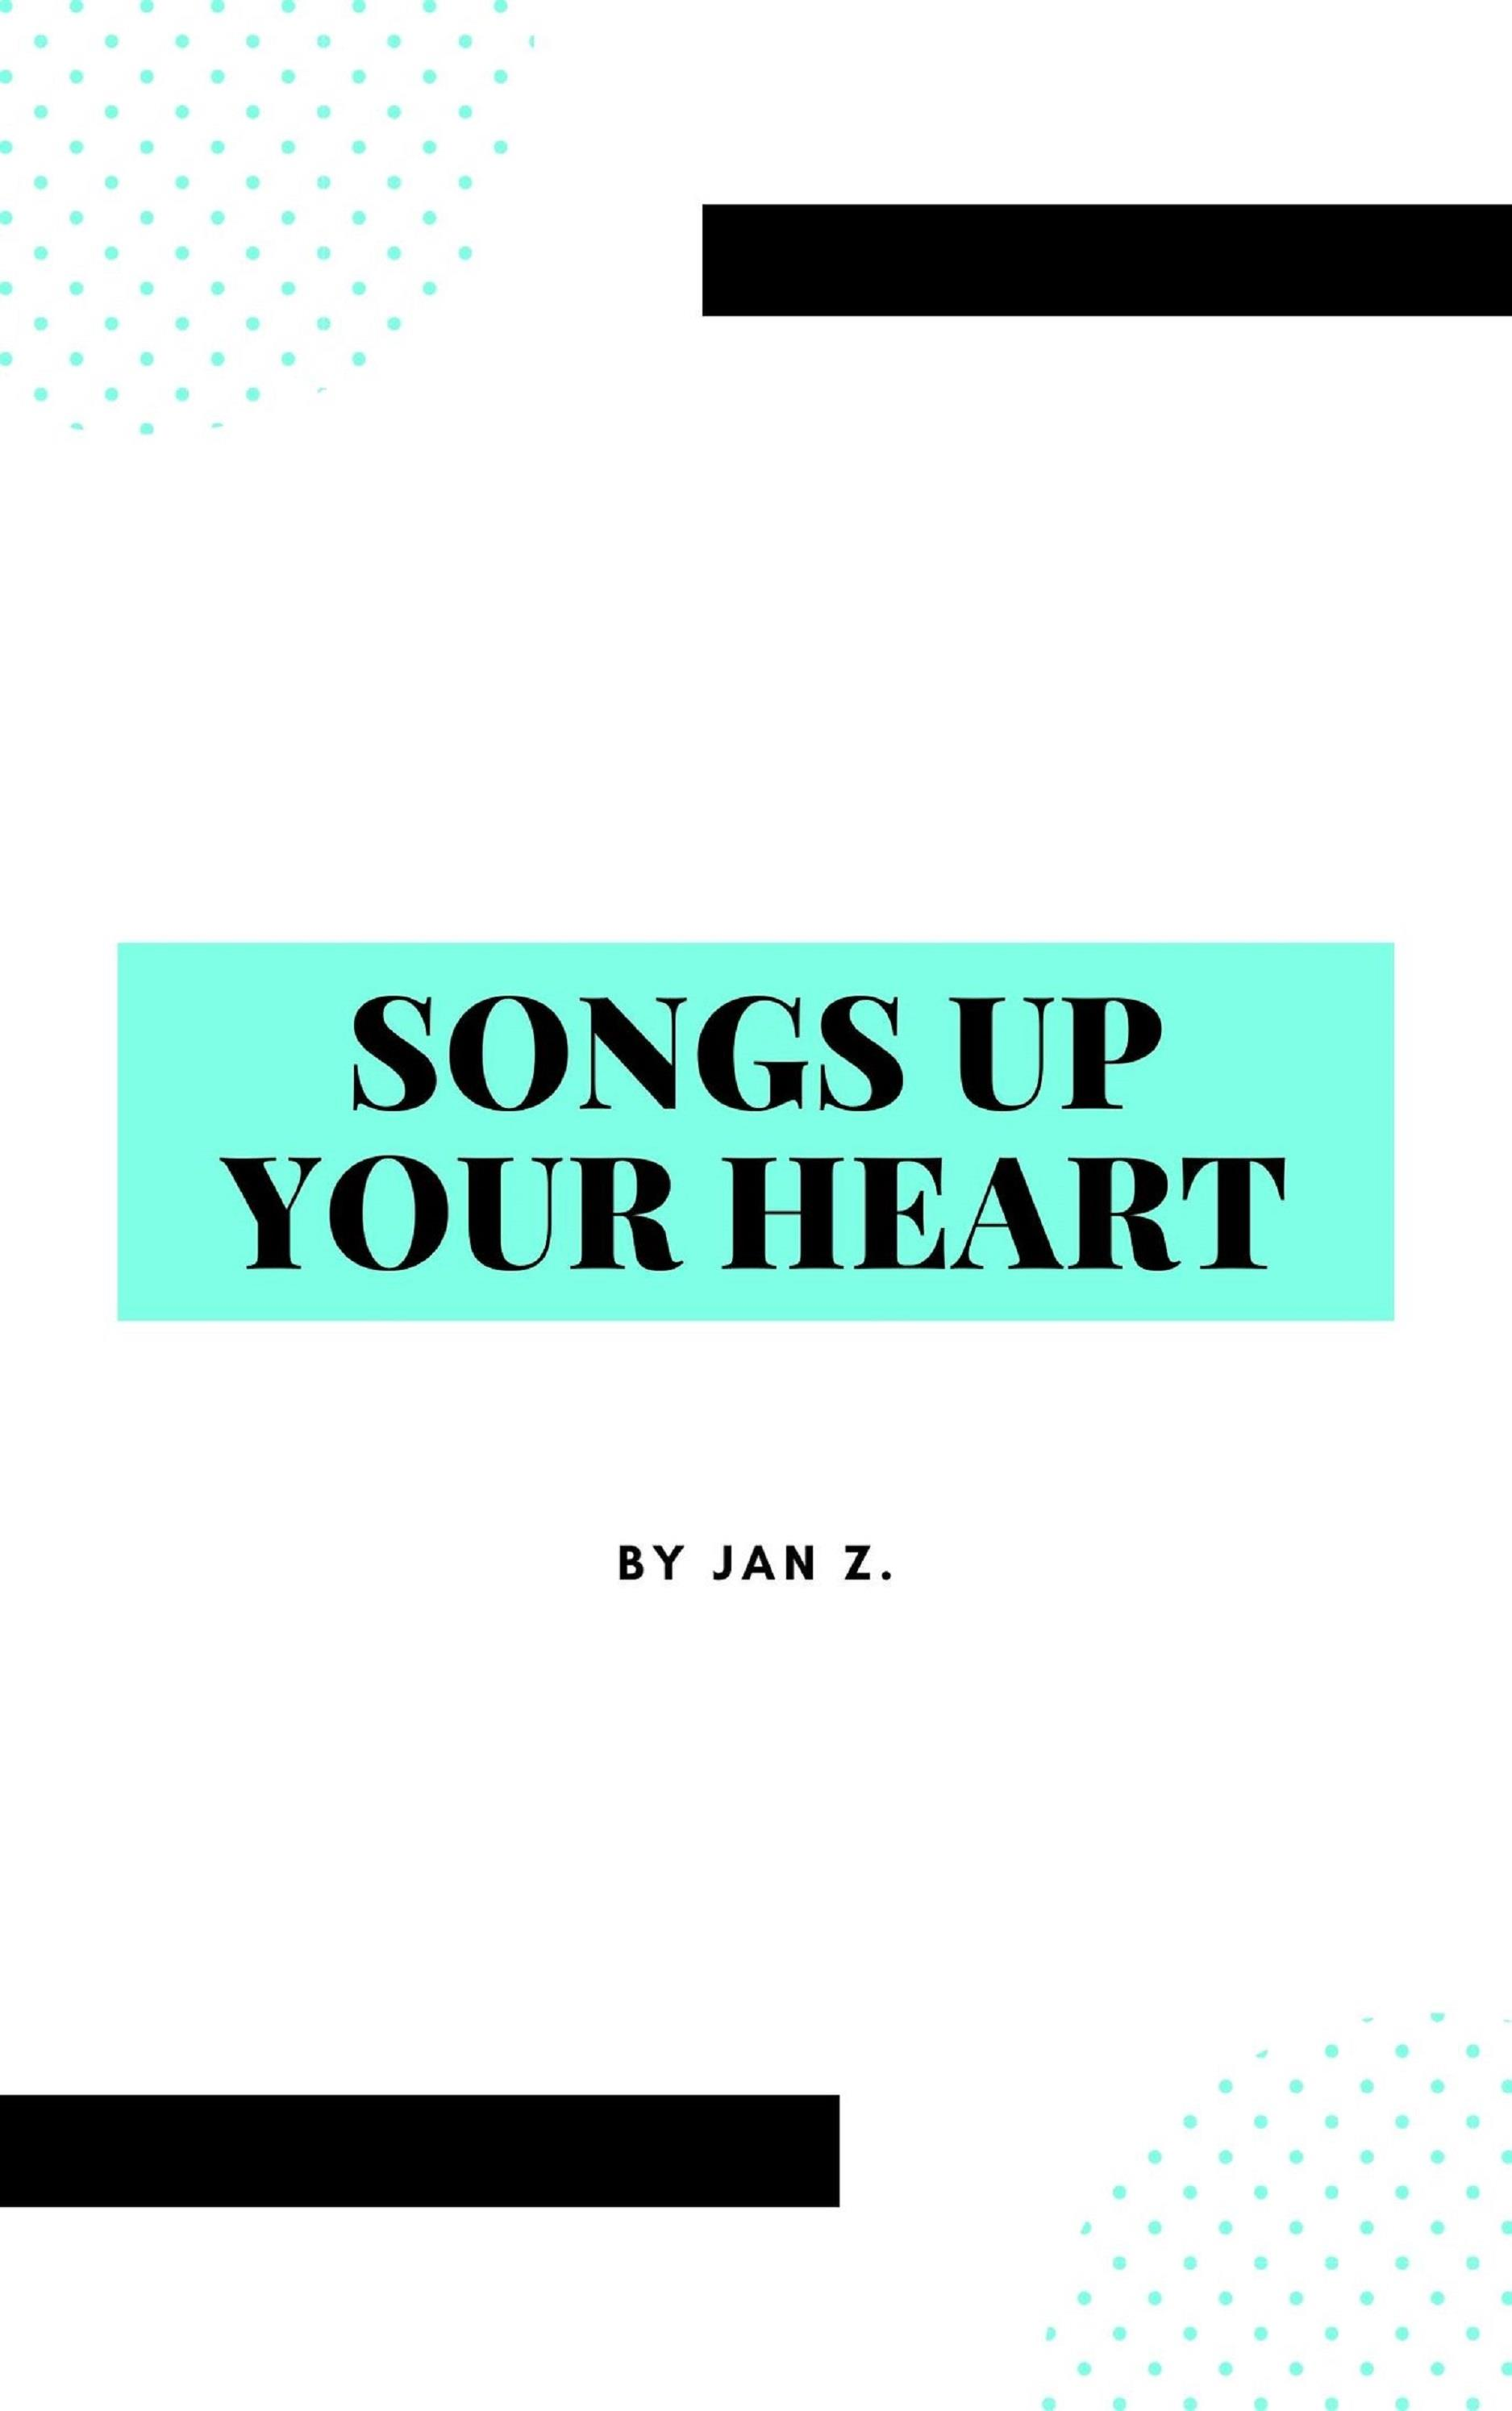 Songs Up Your Heart